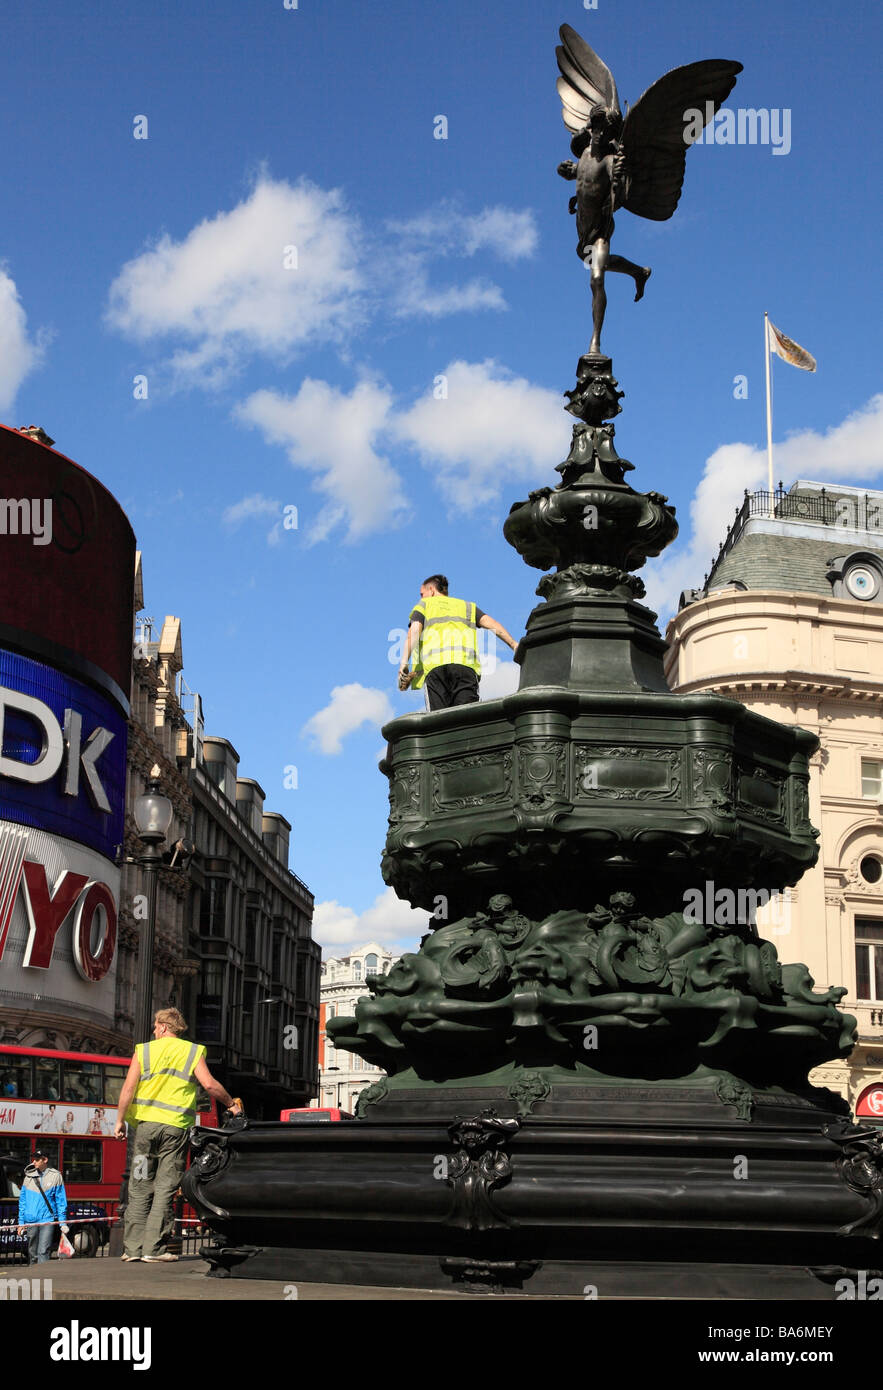 Workmen cleaning the Eros statue. Piccadilly circus, London, England, UK. - Stock Image